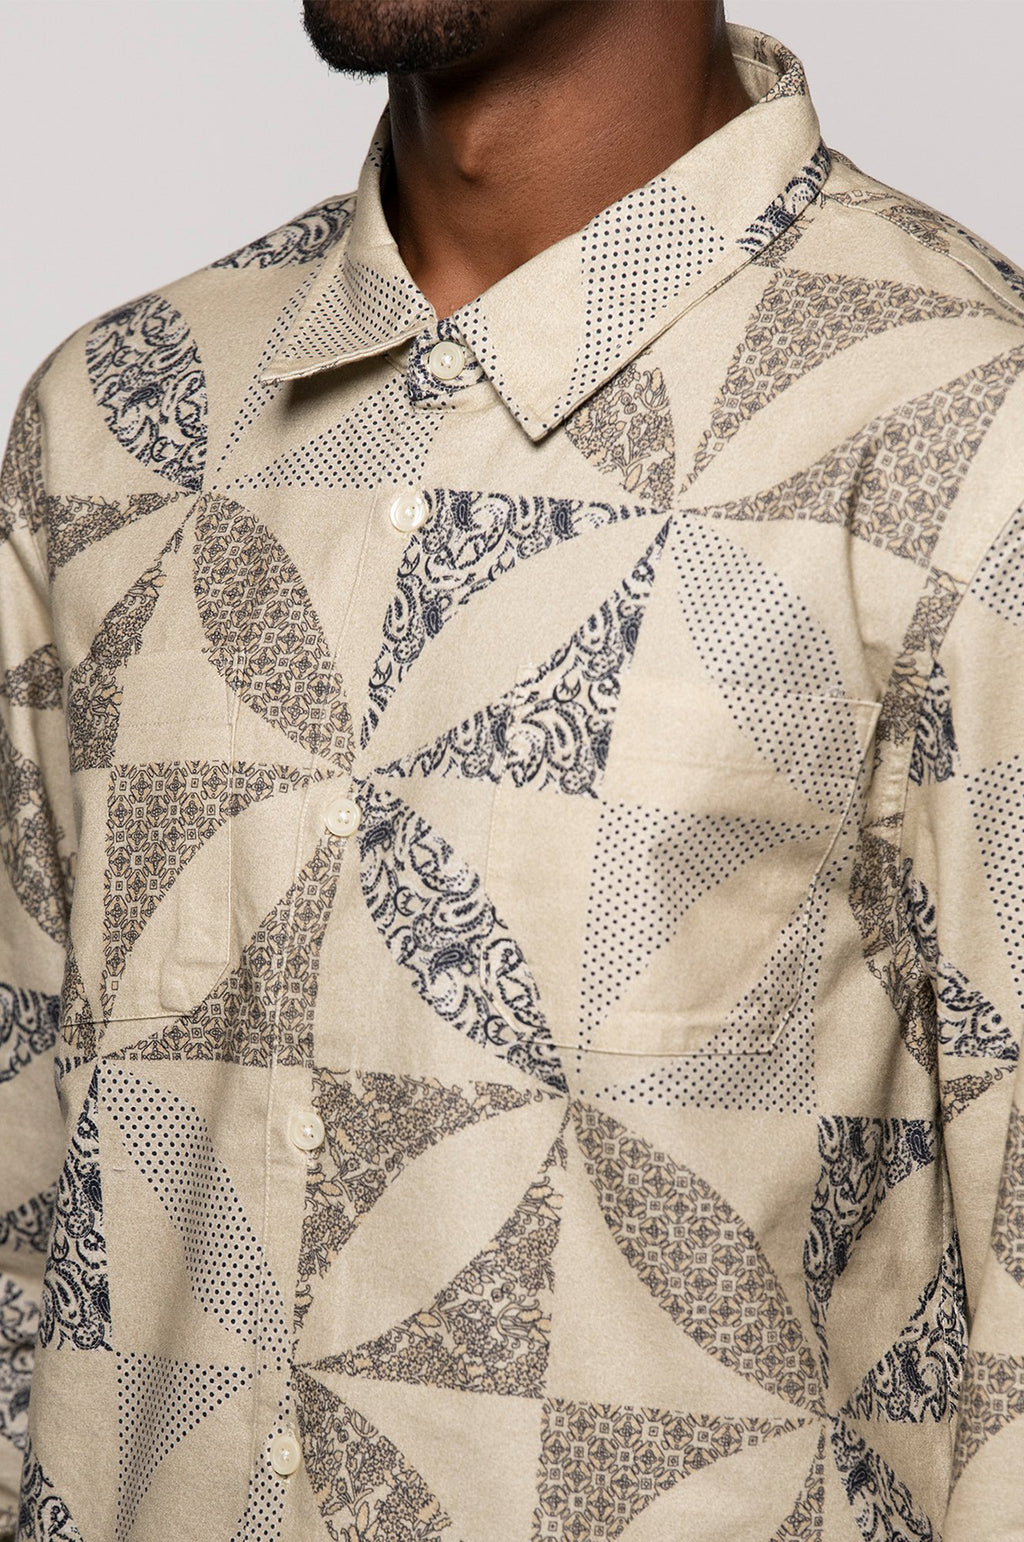 Quilt Pattern Shirt in Sand